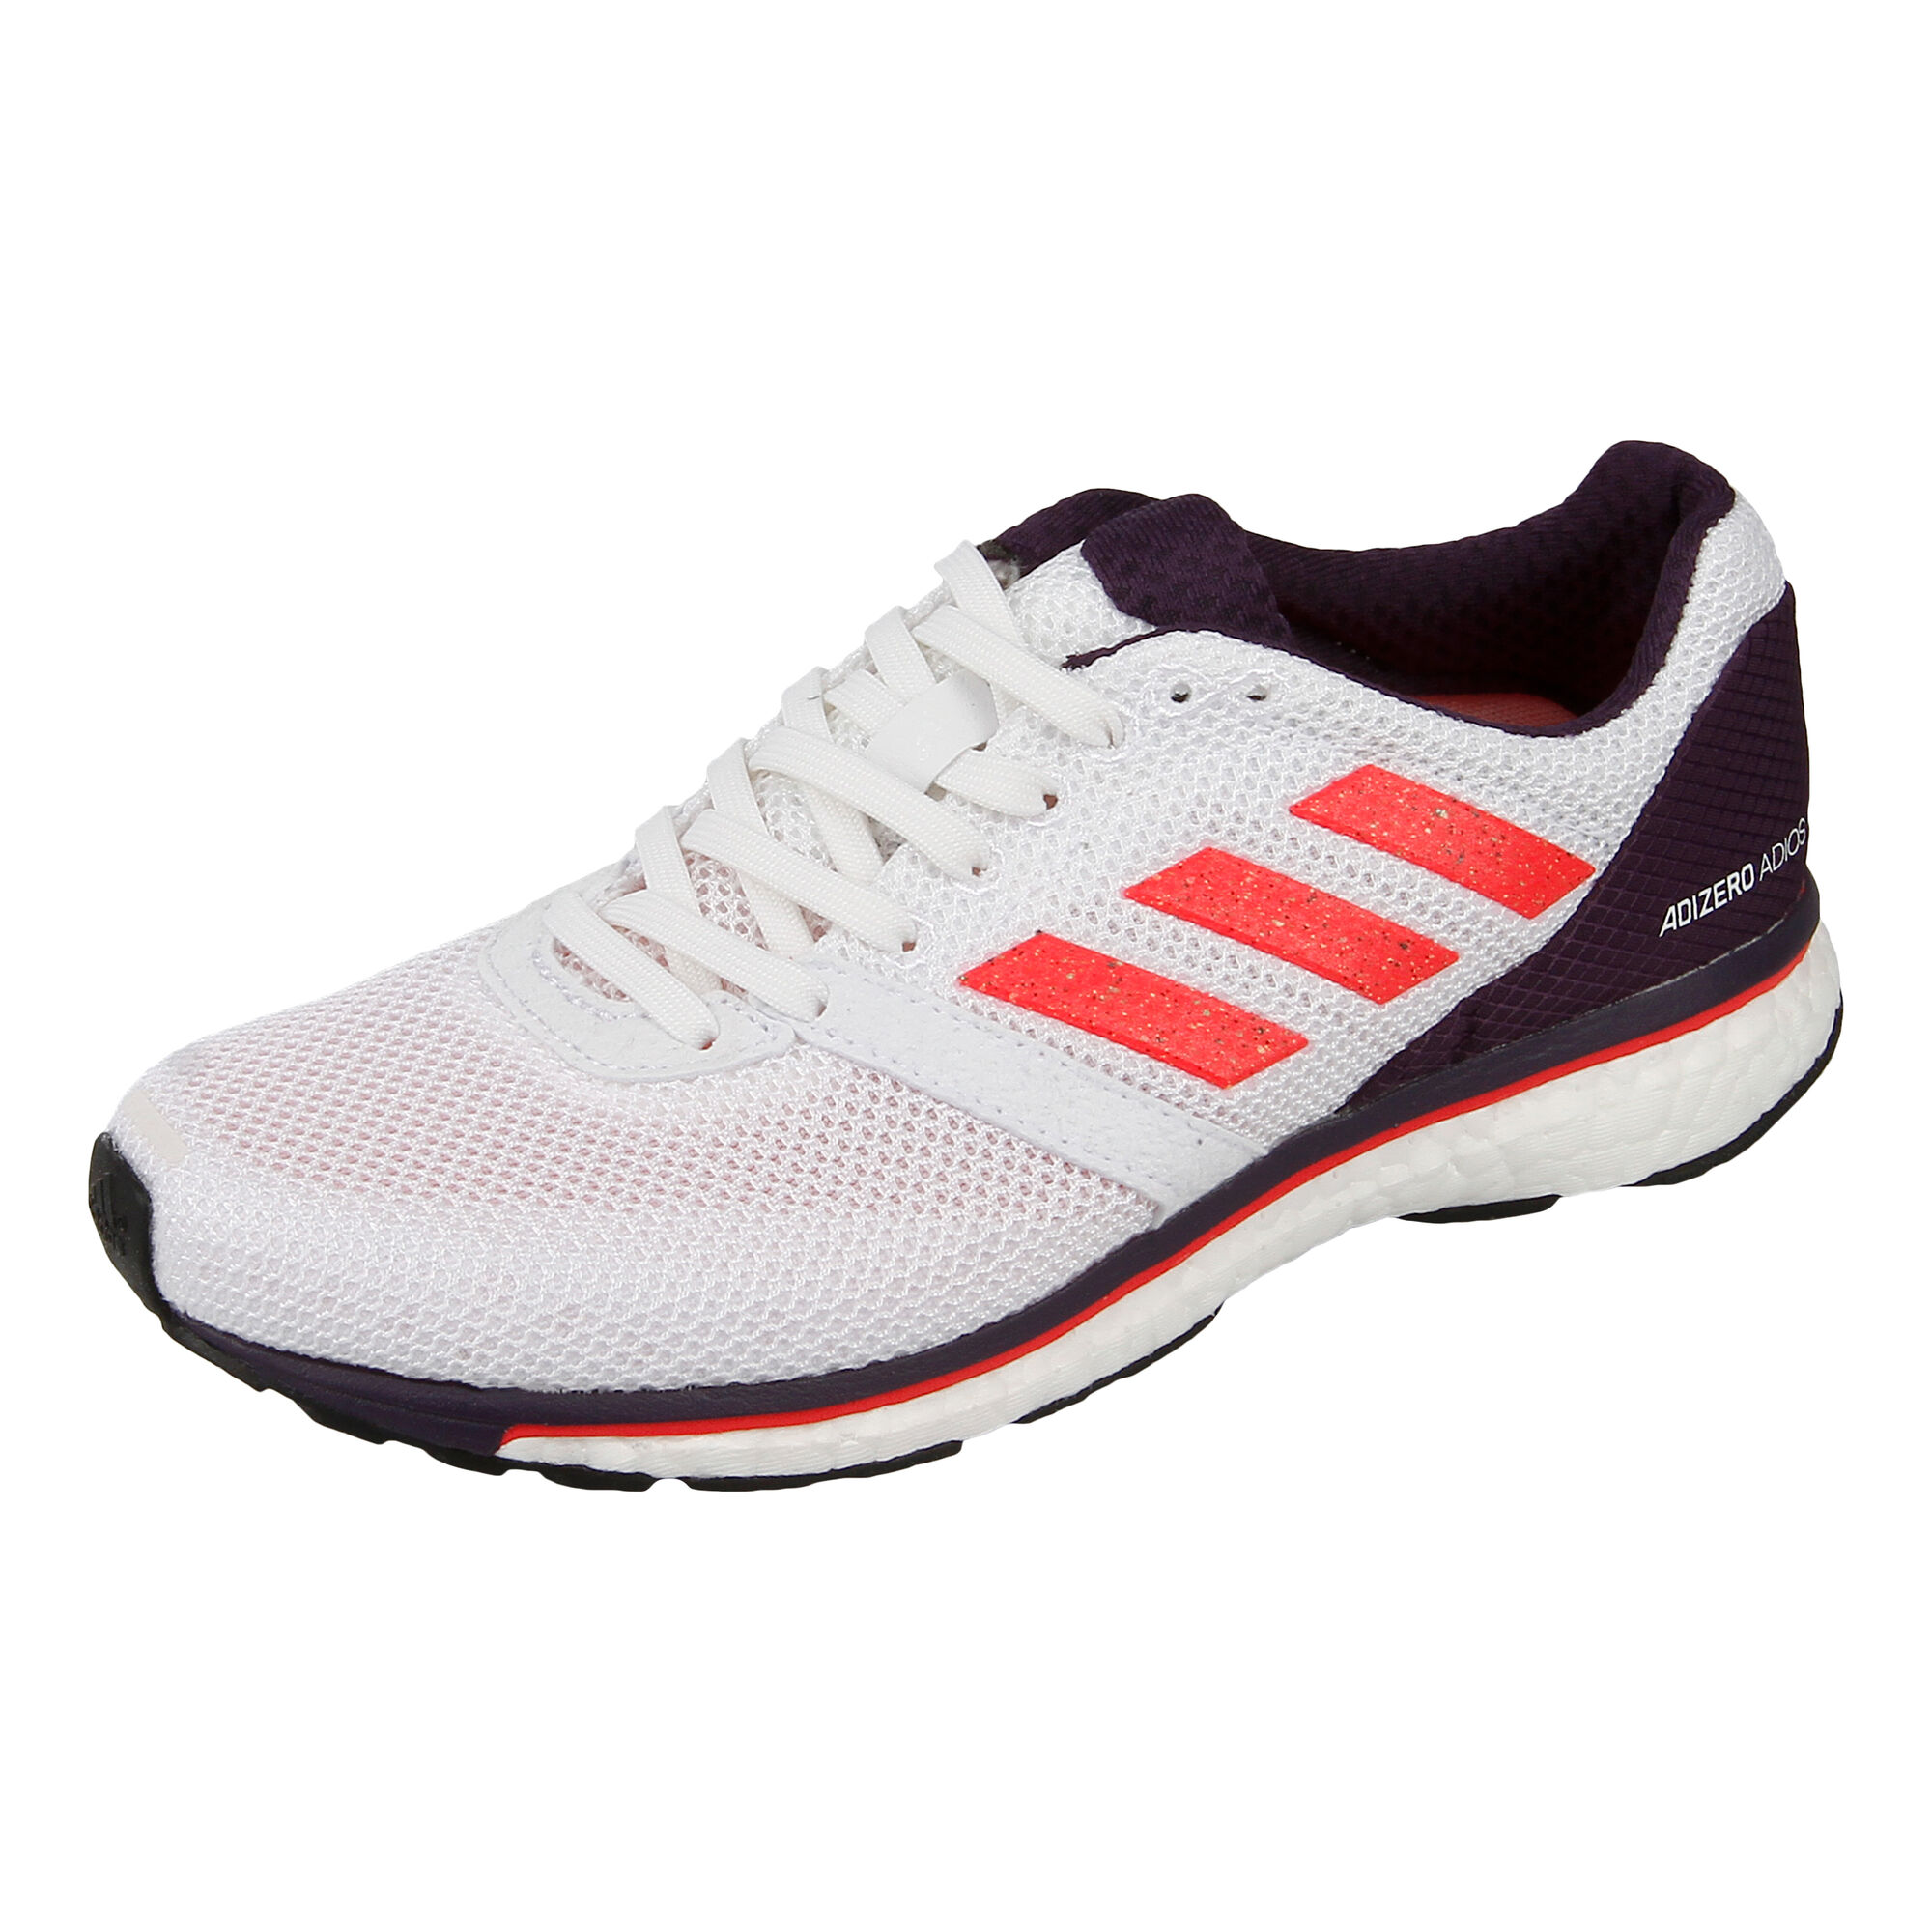 size 40 2d6da fe91e buy adidas Adizero Adios 4 Competition Running Shoe Women ...